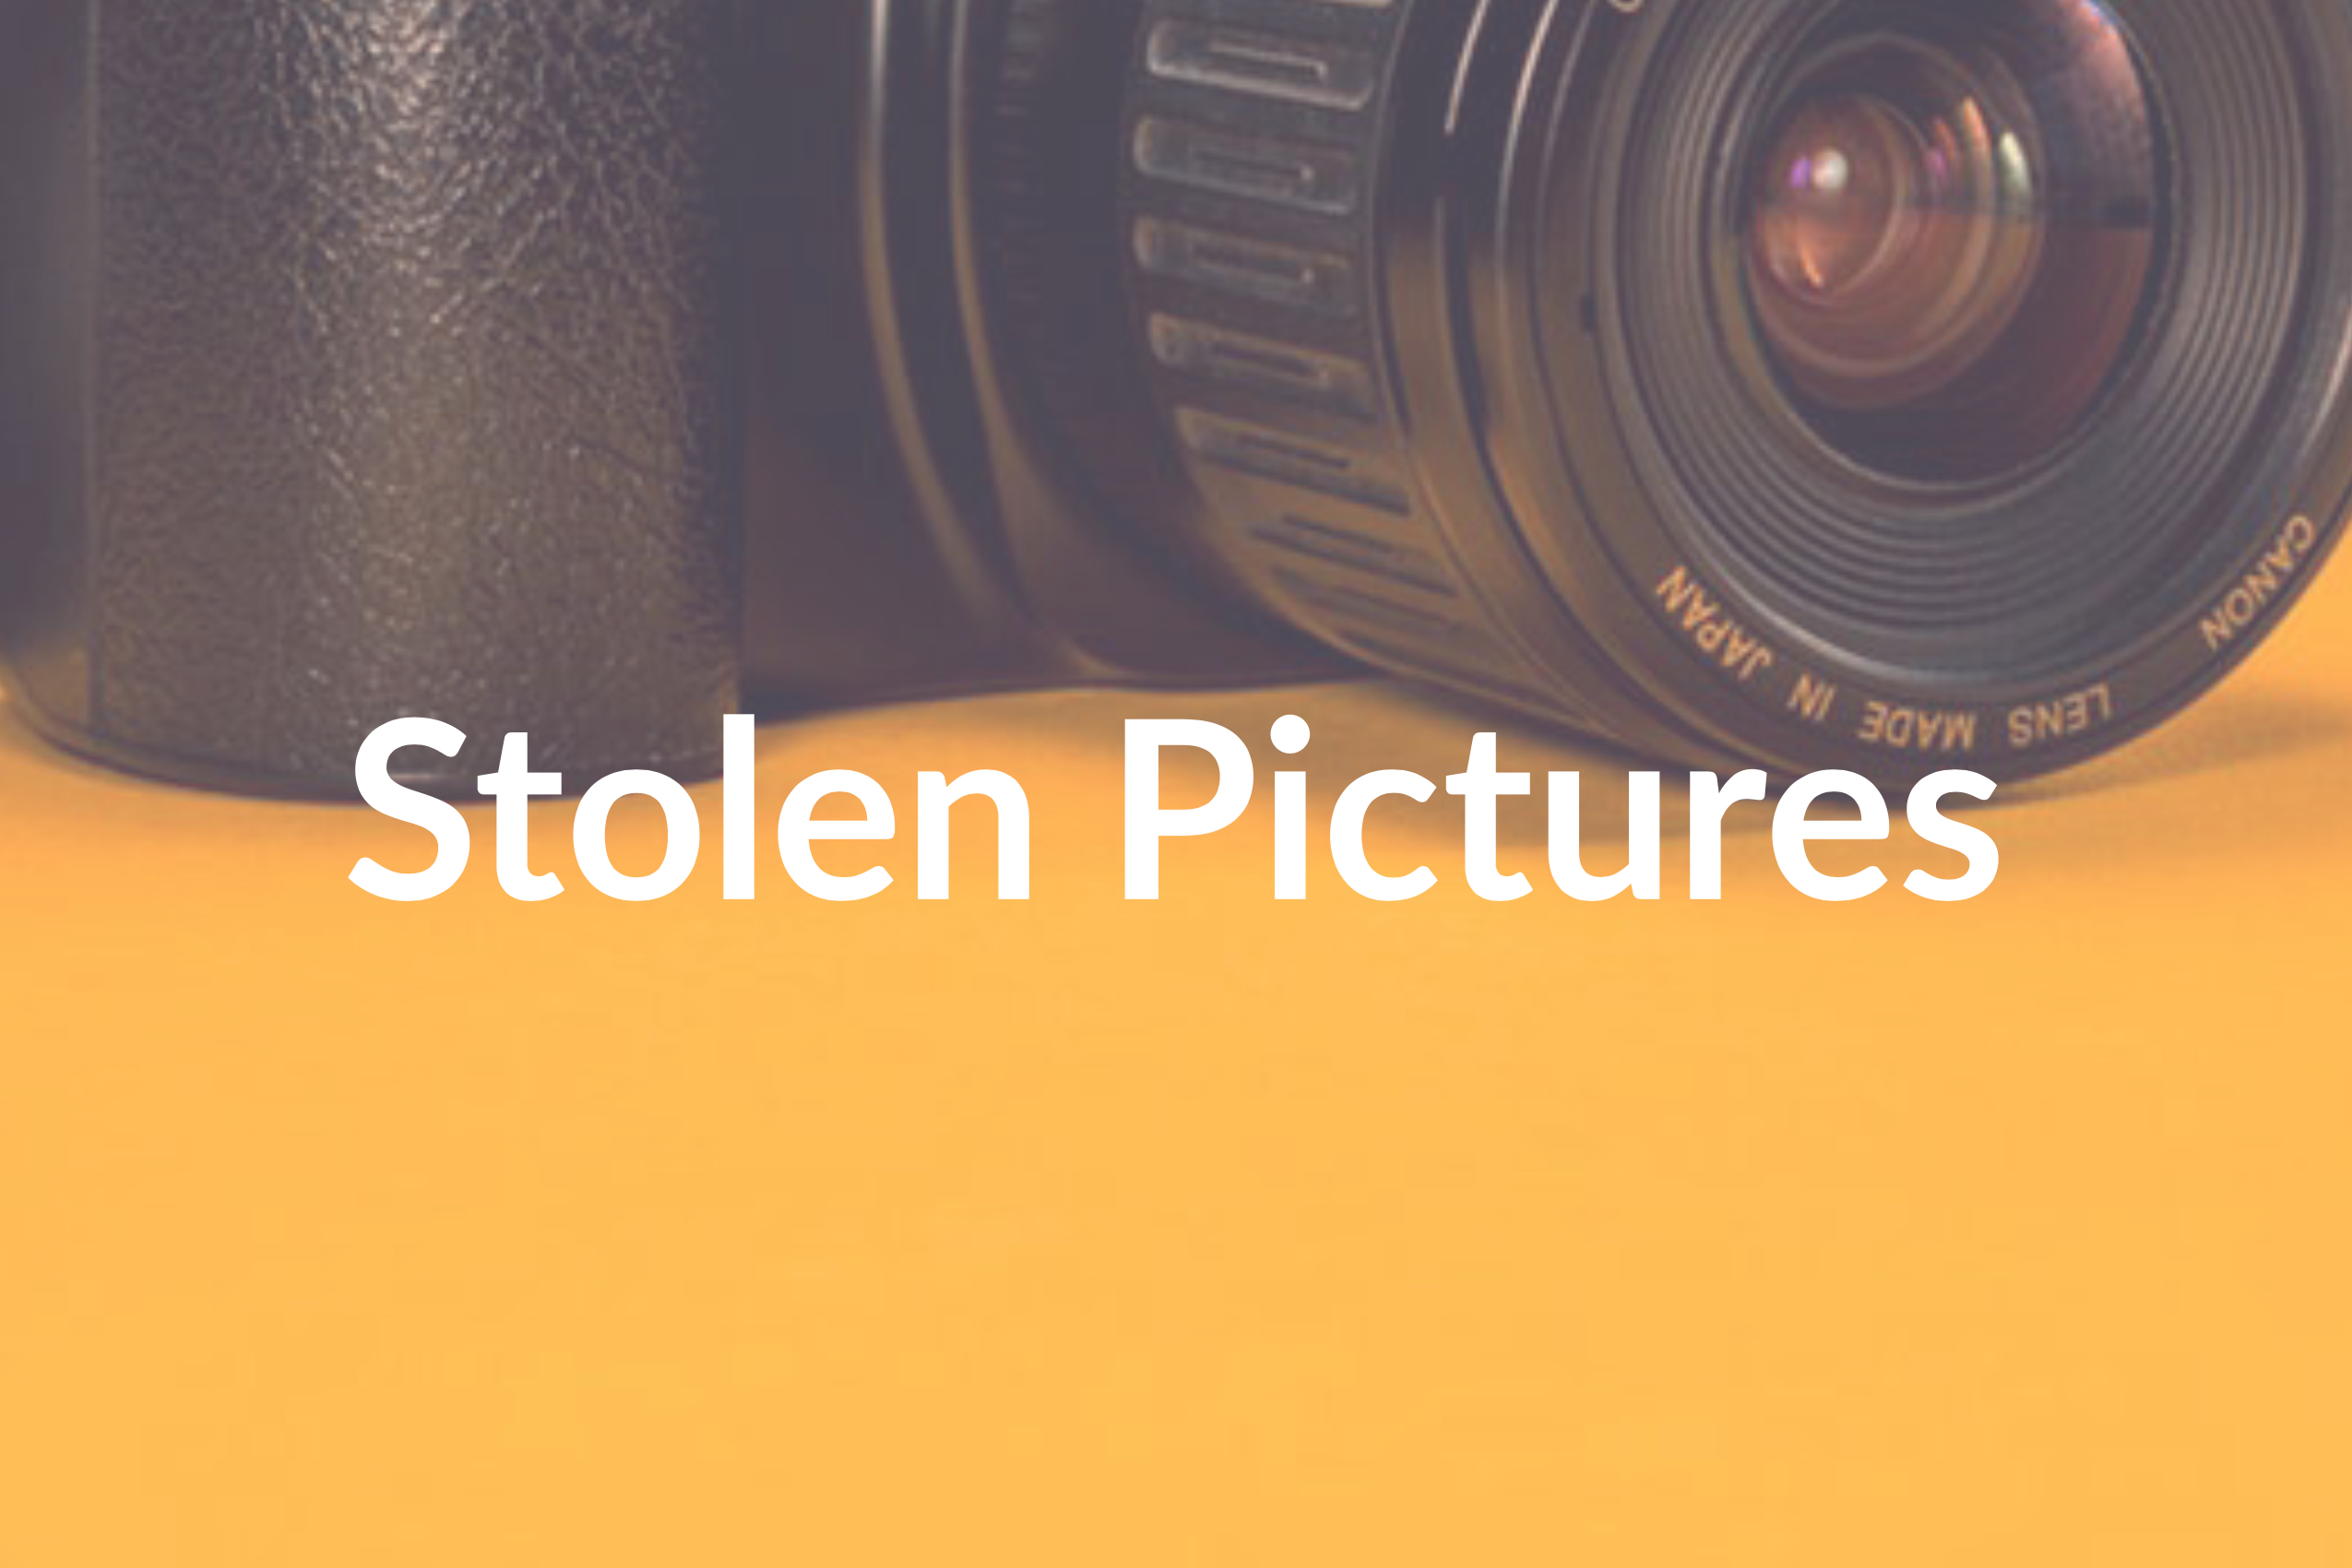 Stolen Pictures: 6 Way to Protect Your Work